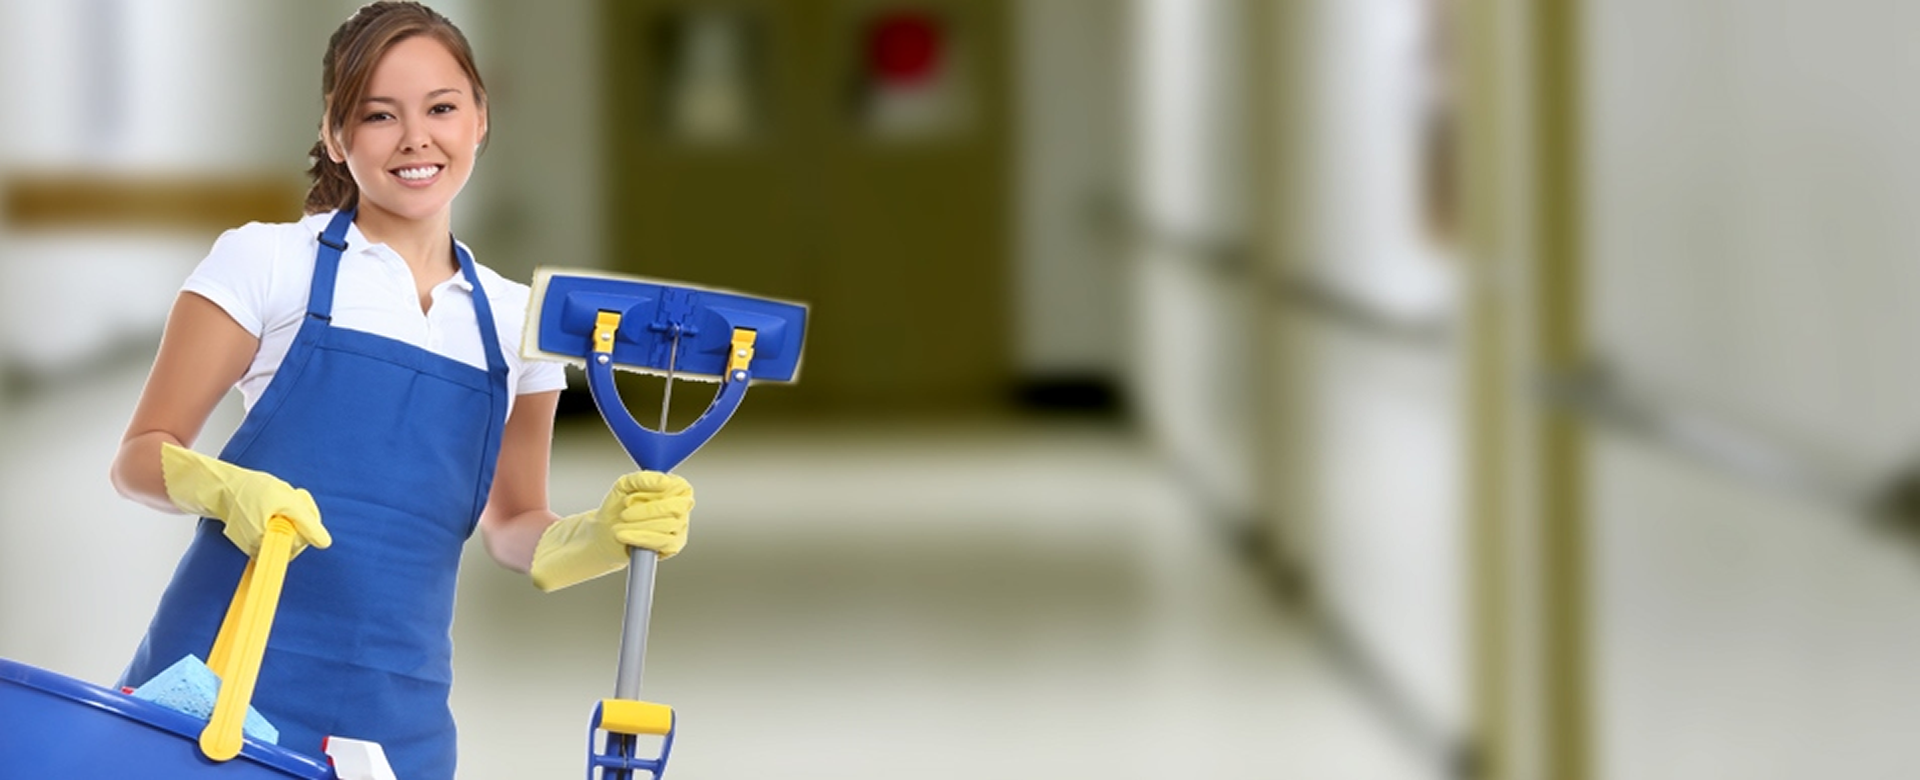 Commercial Cleaning Services : Ed keat palvelut